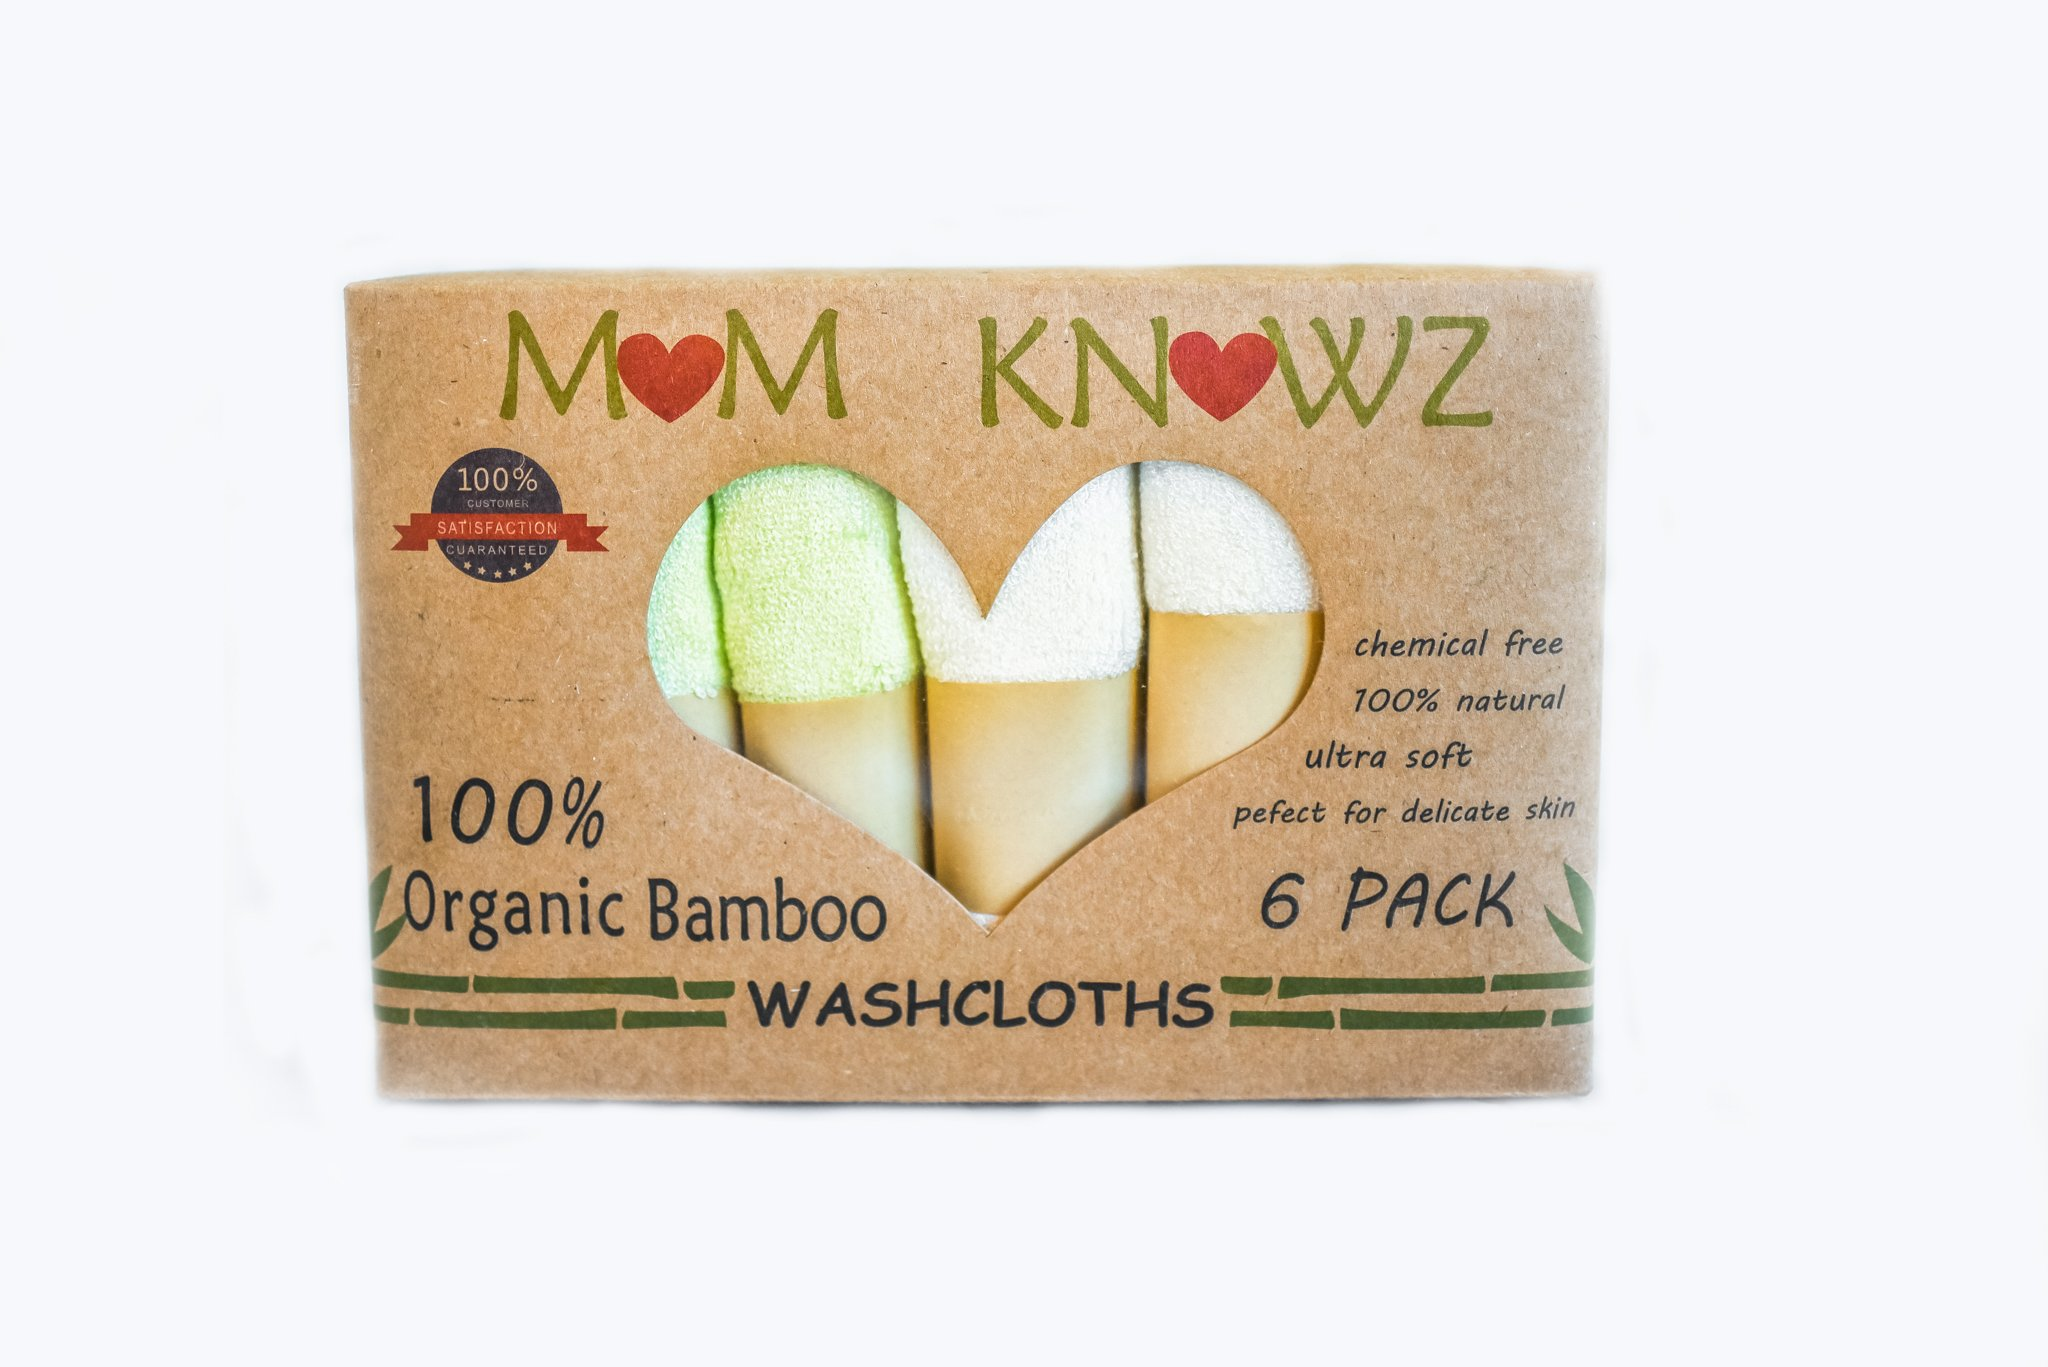 Washcloths by MOM KNOWZ 100% Organic Bamboo washcloth/facecloth Towels. Ultra Soft, Hypoallergenic Perfect for Delicate Sensitive Skin, Eczema or as Baby Wipes. Shower Gift or Baby Registry. by MOM KNOWZ